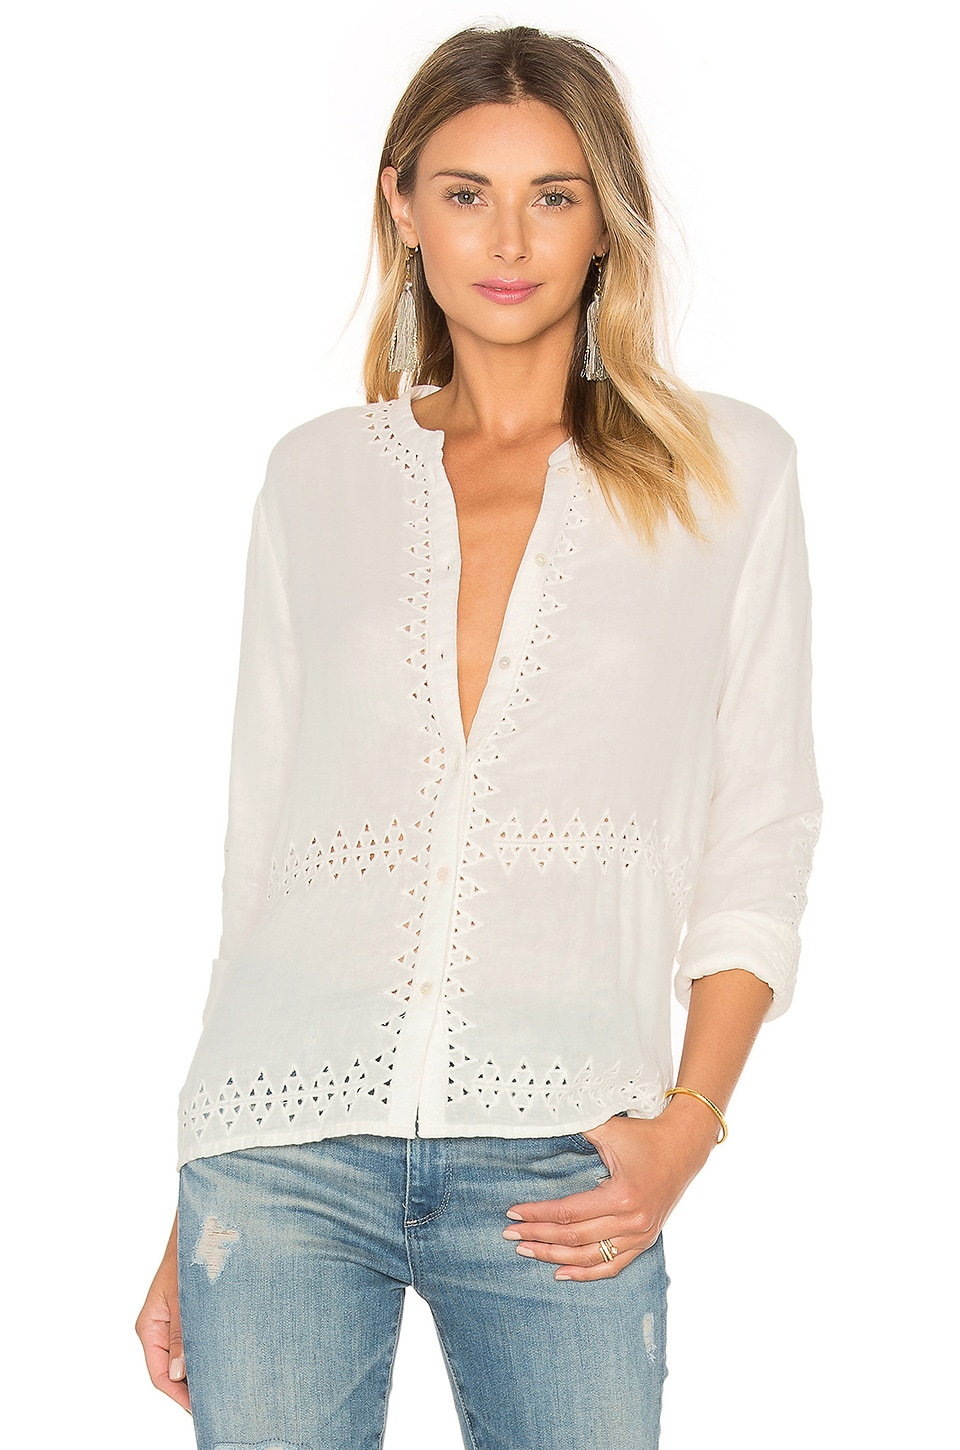 Embroidered Button Up by Maison Scotch